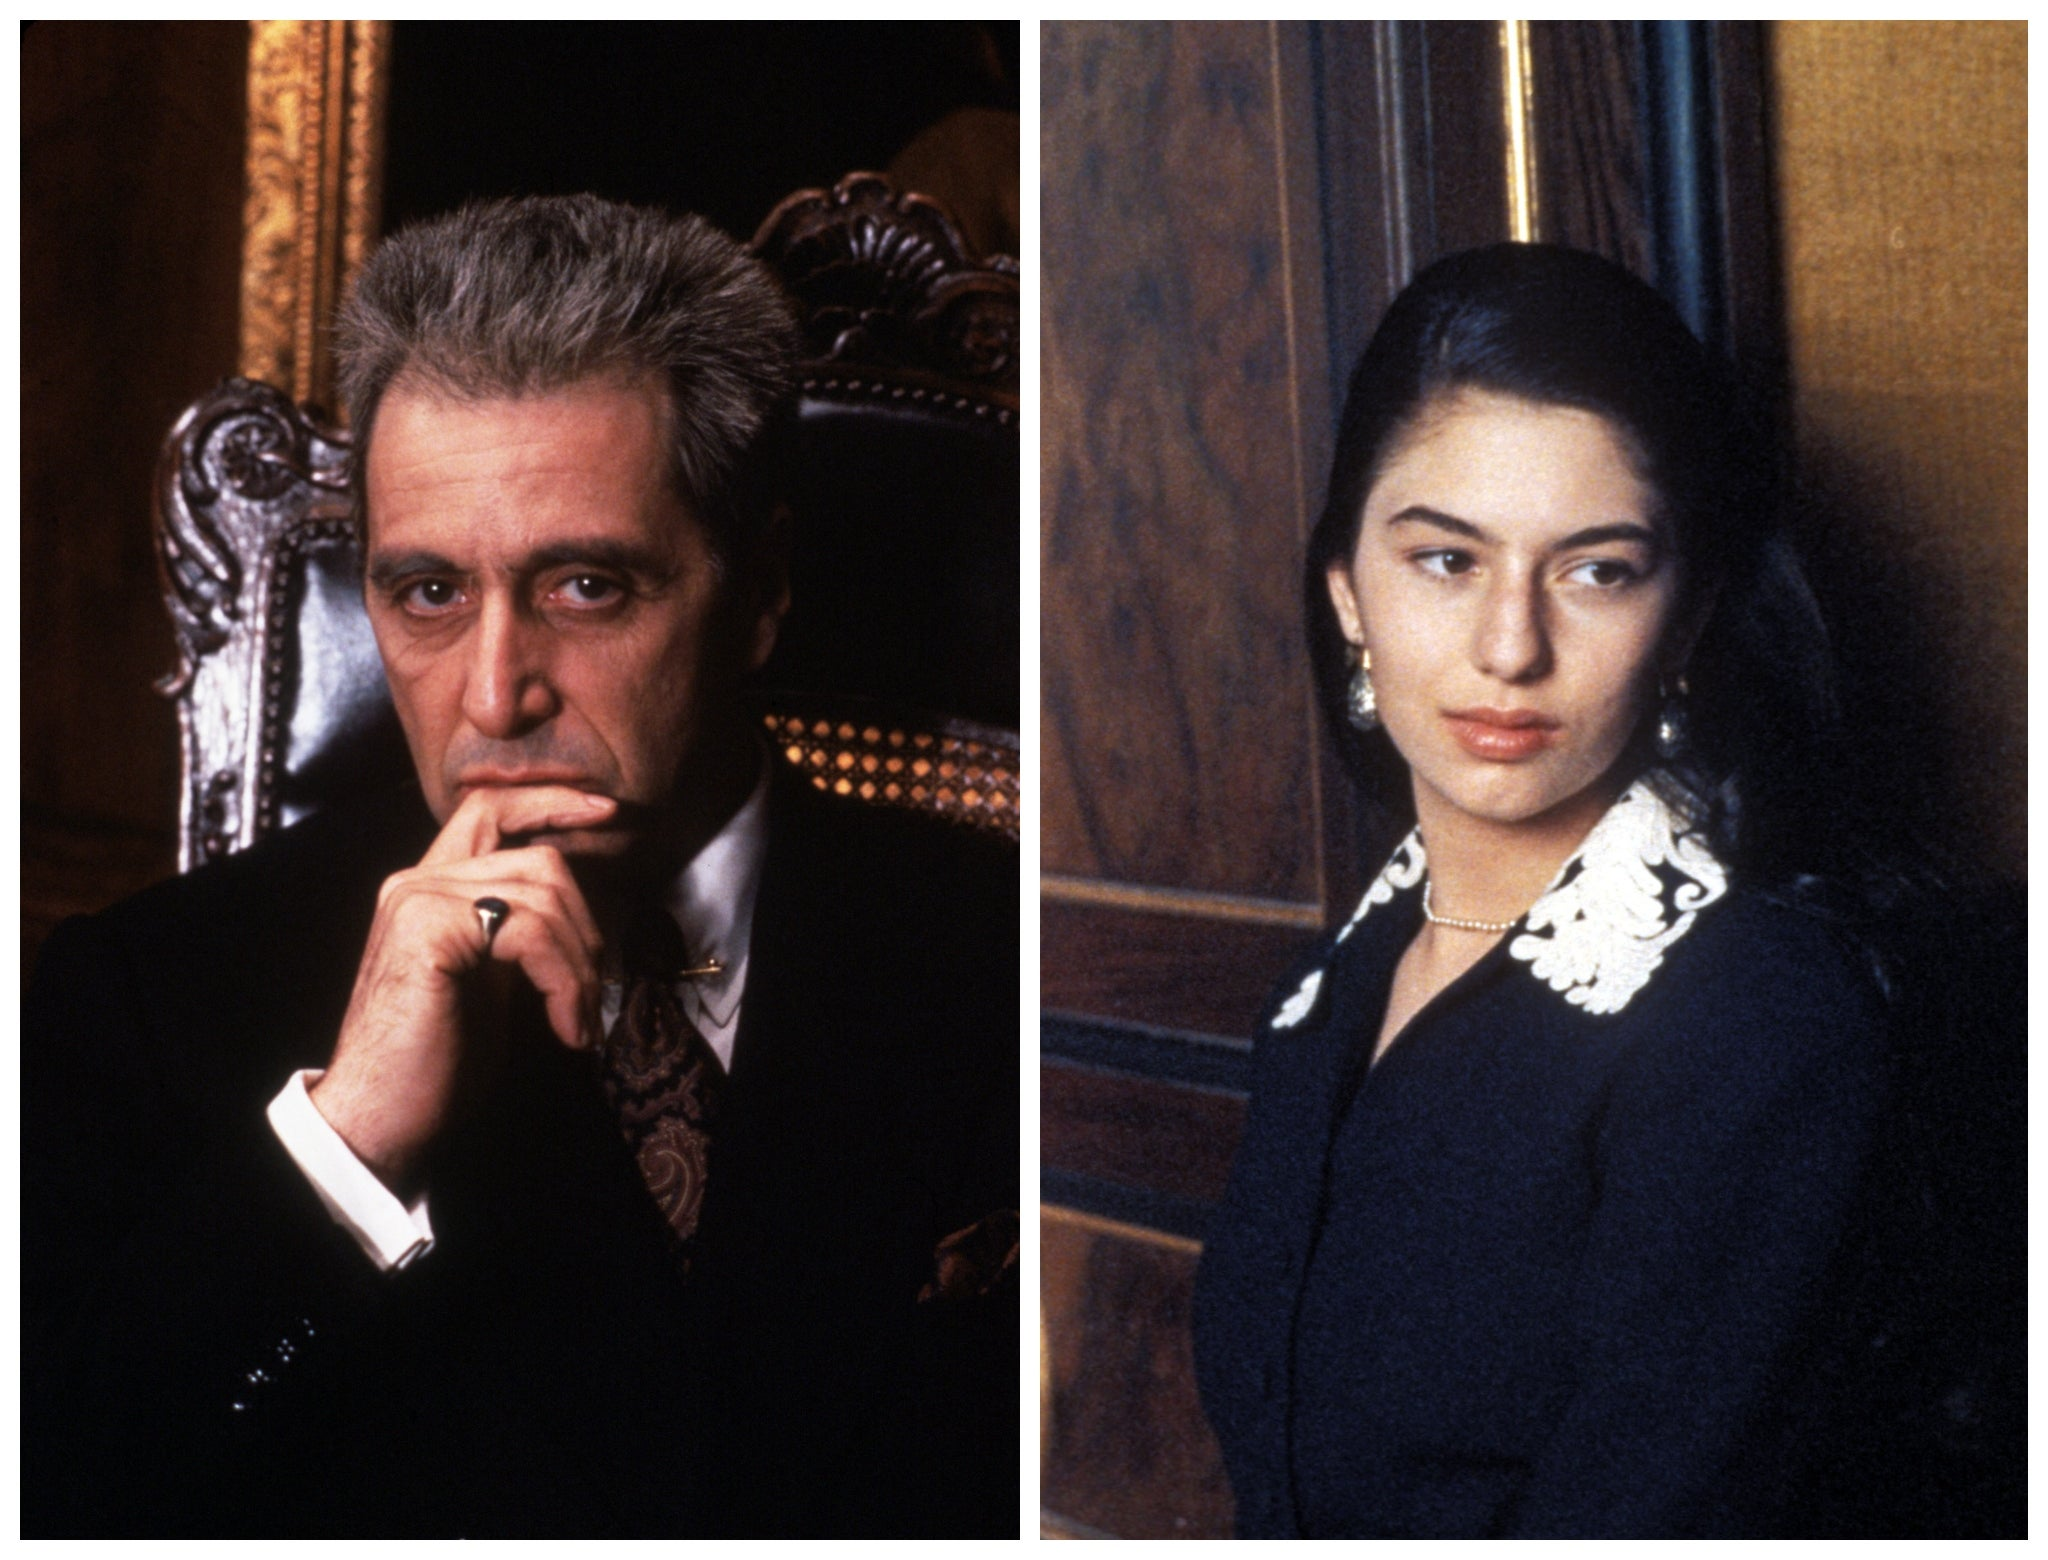 Al Pacino says he hopes new Godfather III cut will 'resolve things' for Sofia Coppola